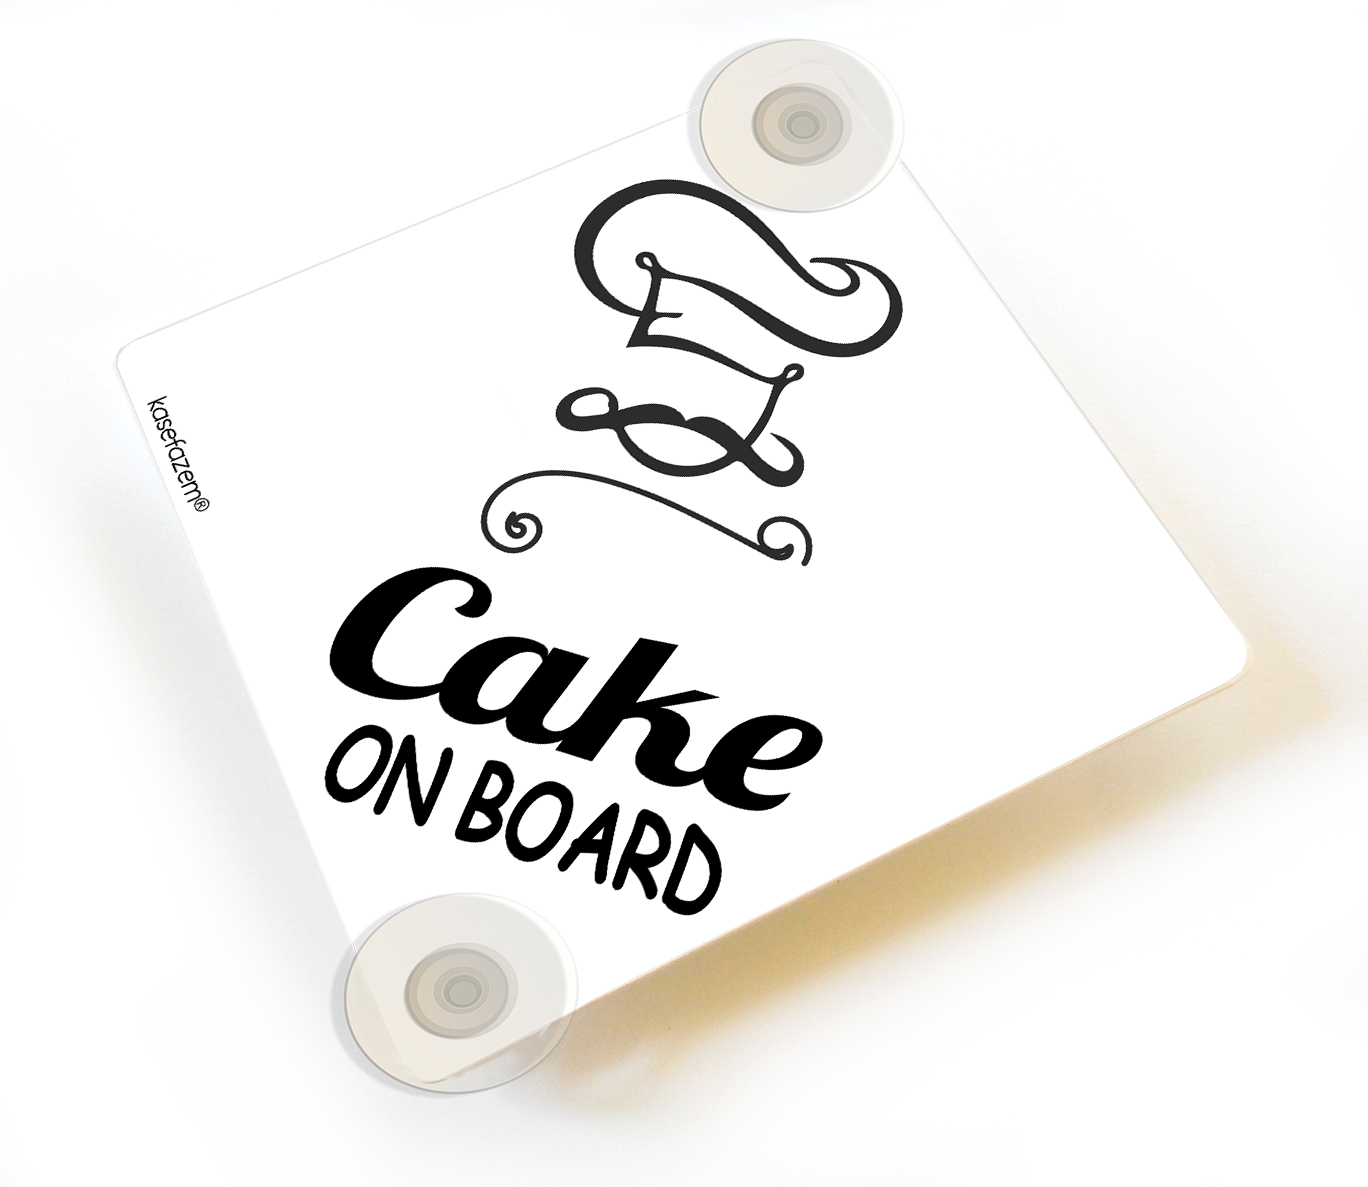 White Cake on Board Car Sign with Suction Cups